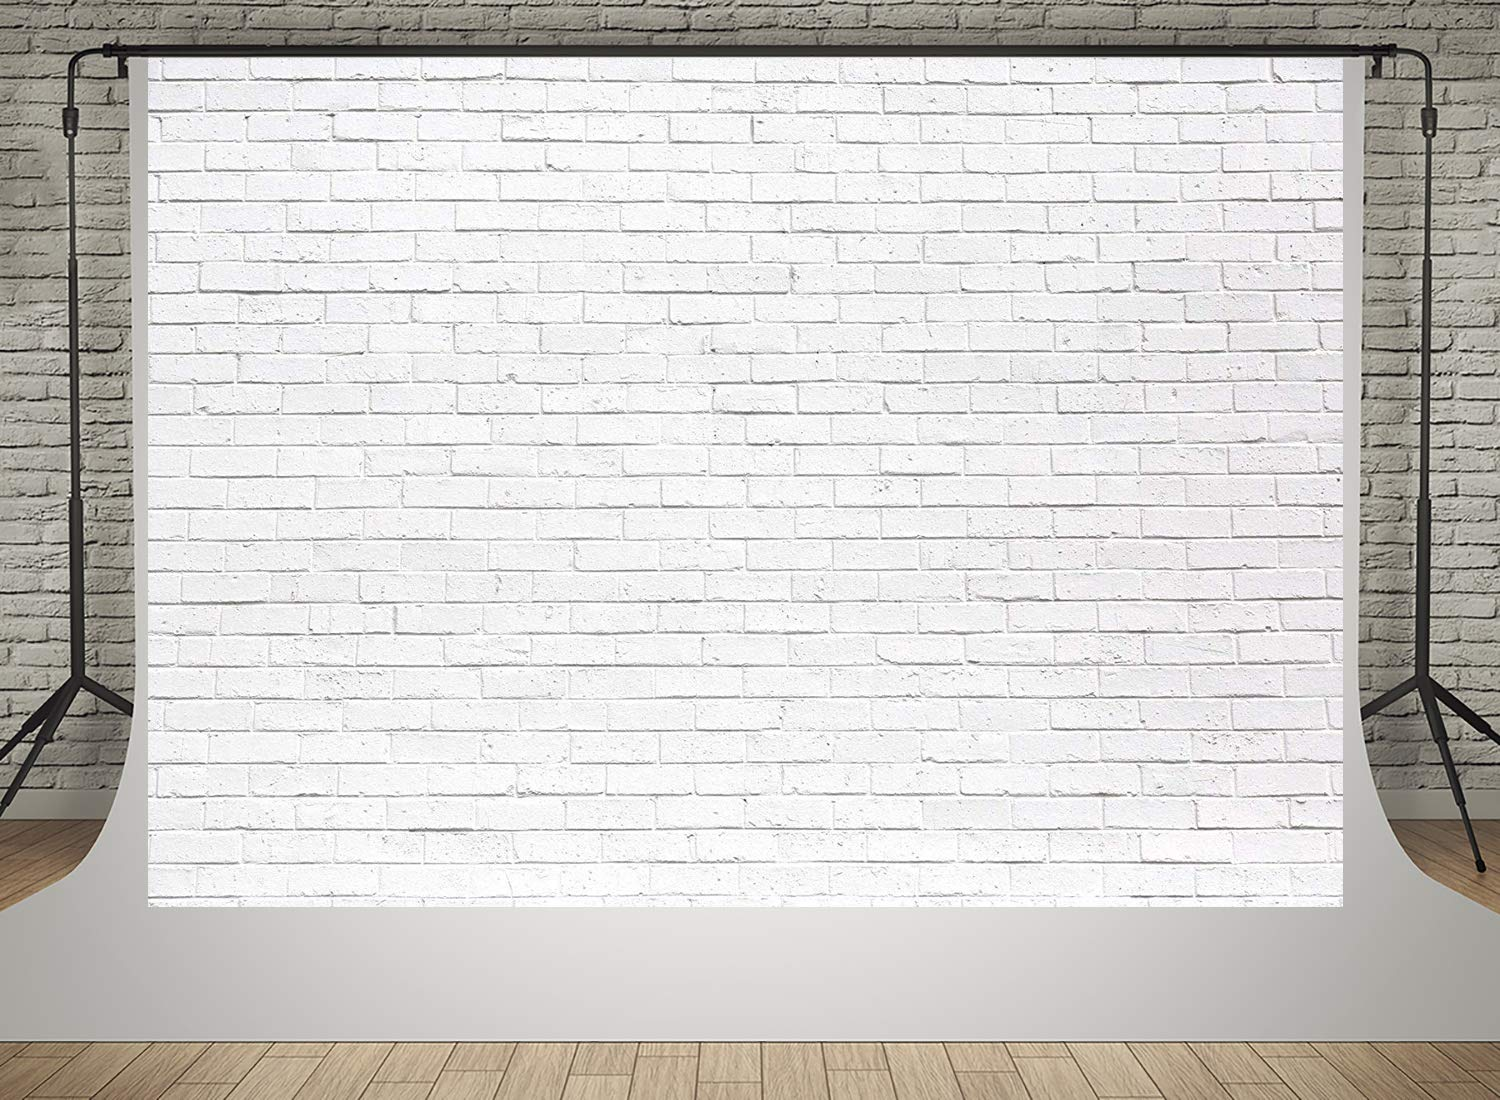 Kate10x6.5ft White Brick Wall Photography Backdrops Vintage Seamless Portrait Wedding Photo Background Props Holiday Party Decoration Backdrop for Photoshoot